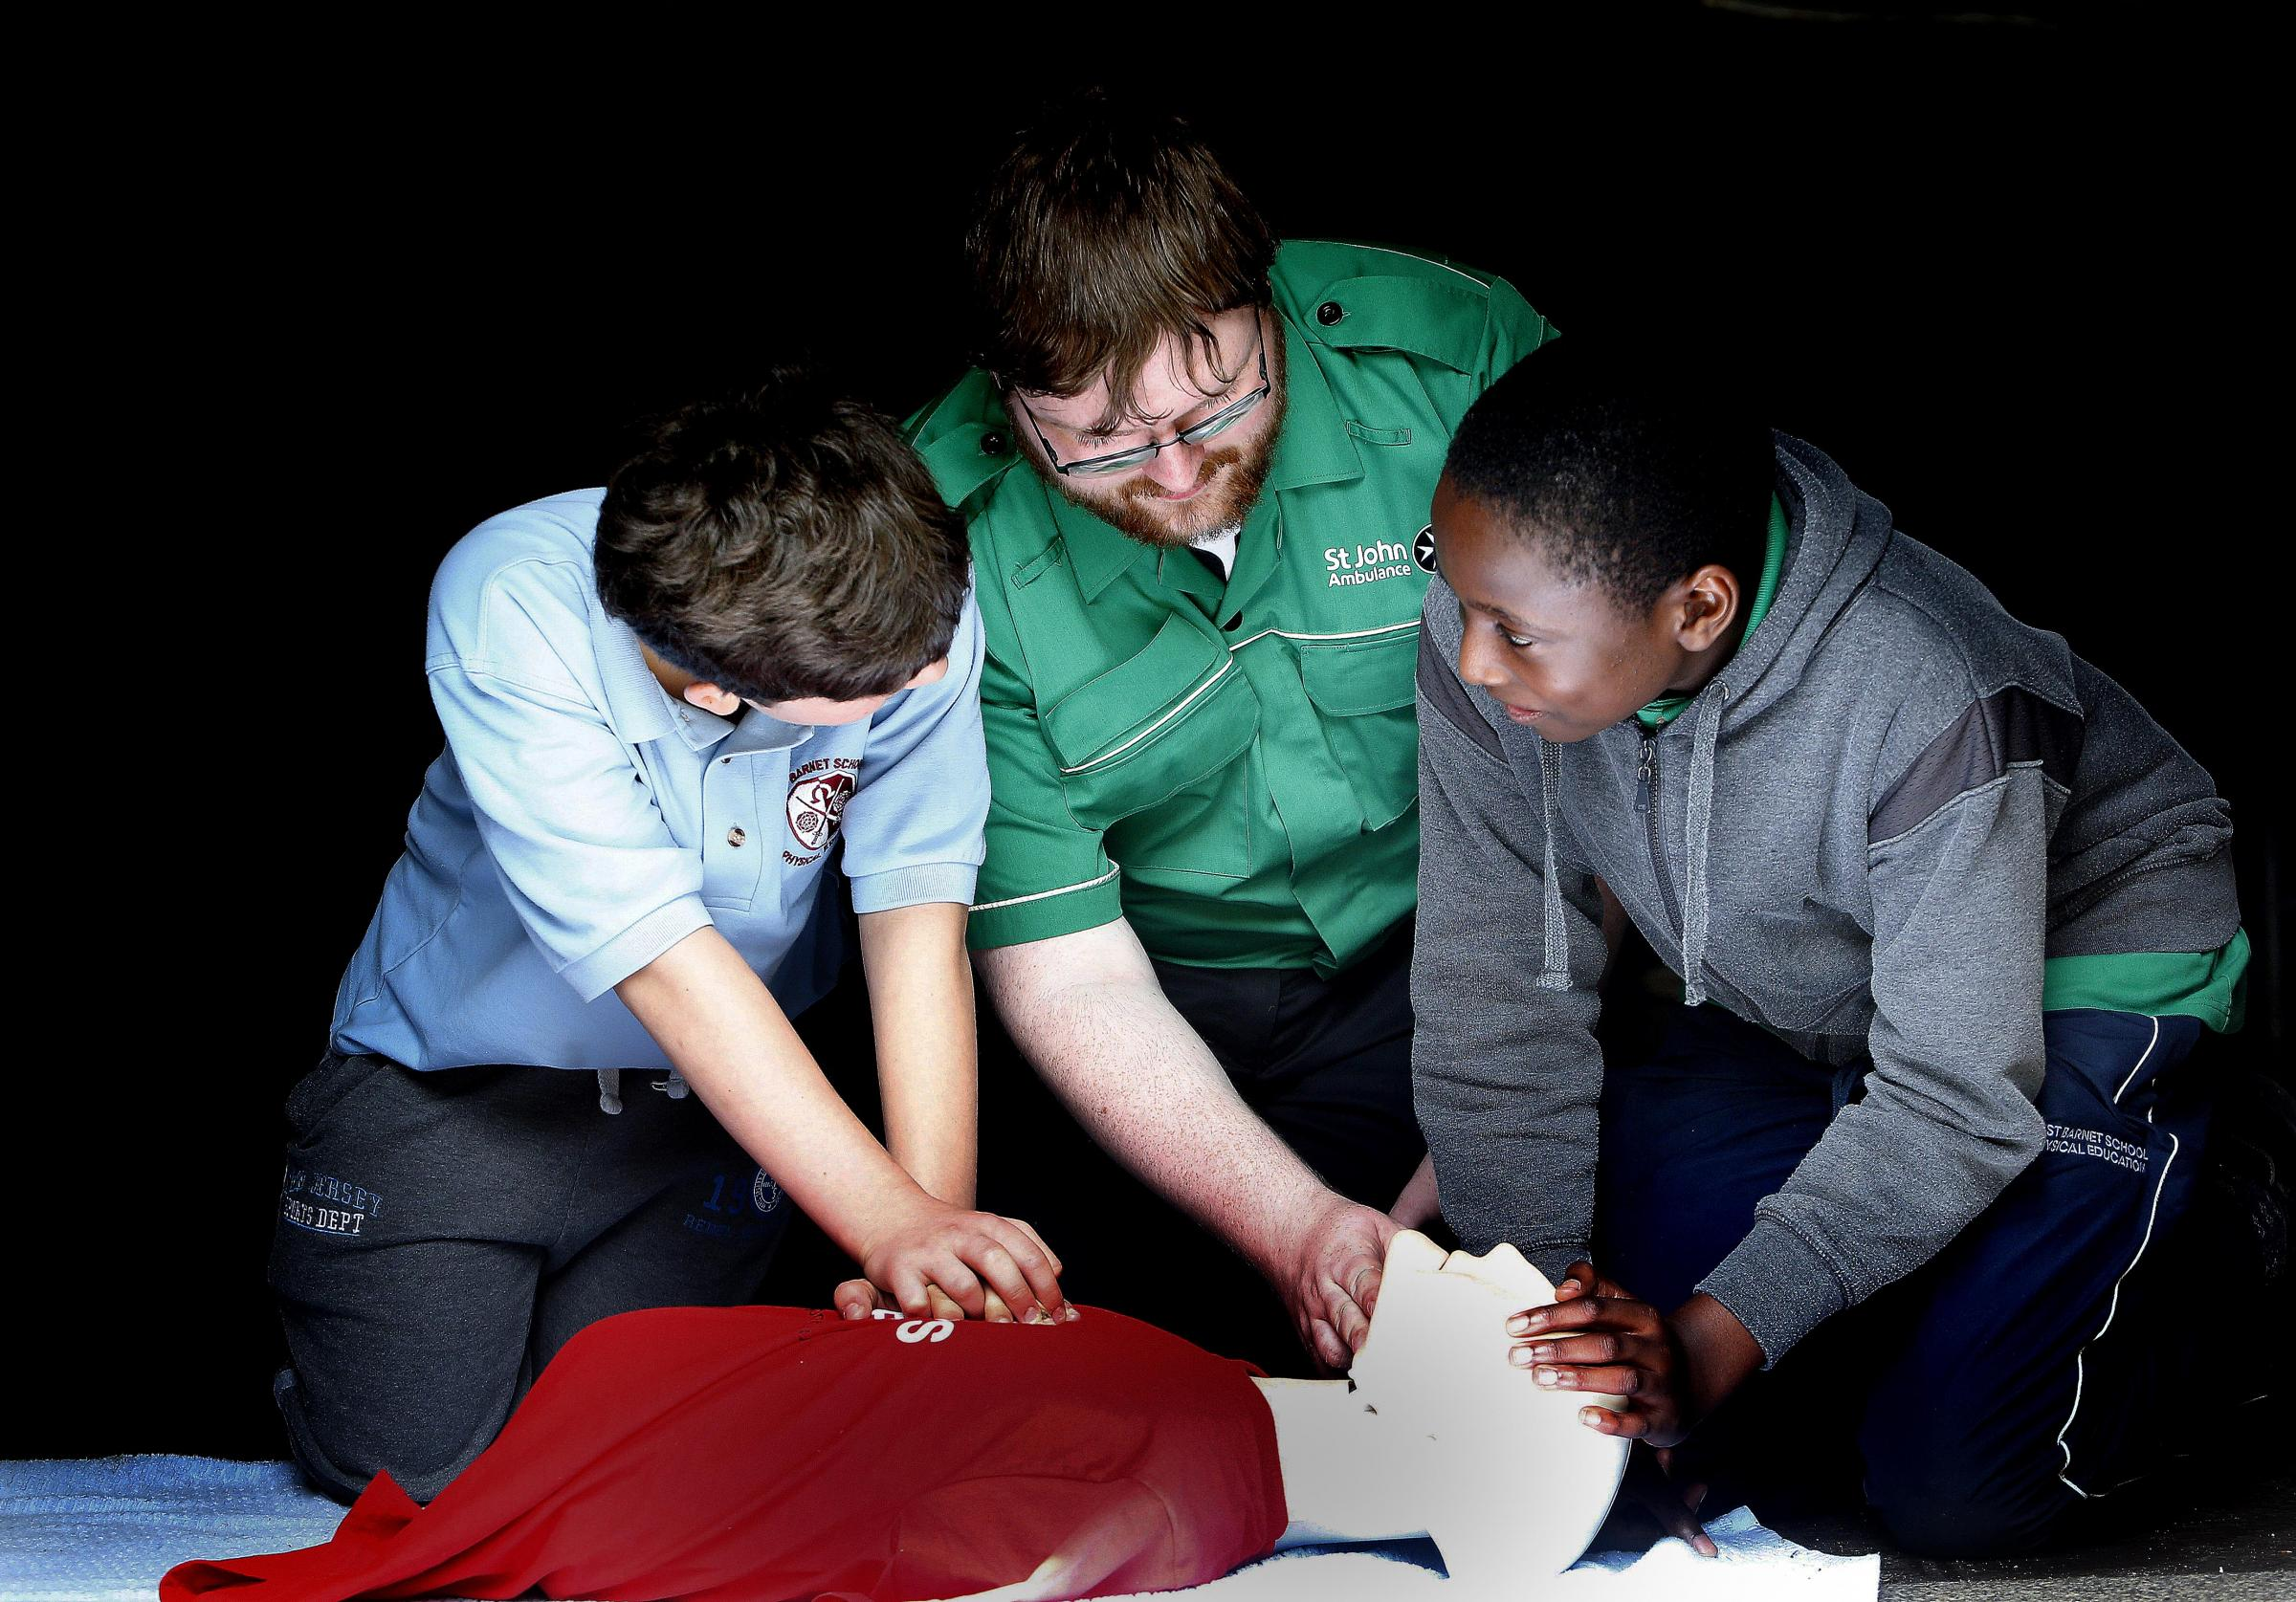 Pupils pitted their first aid skills against each other at Bounds Green Scouts park